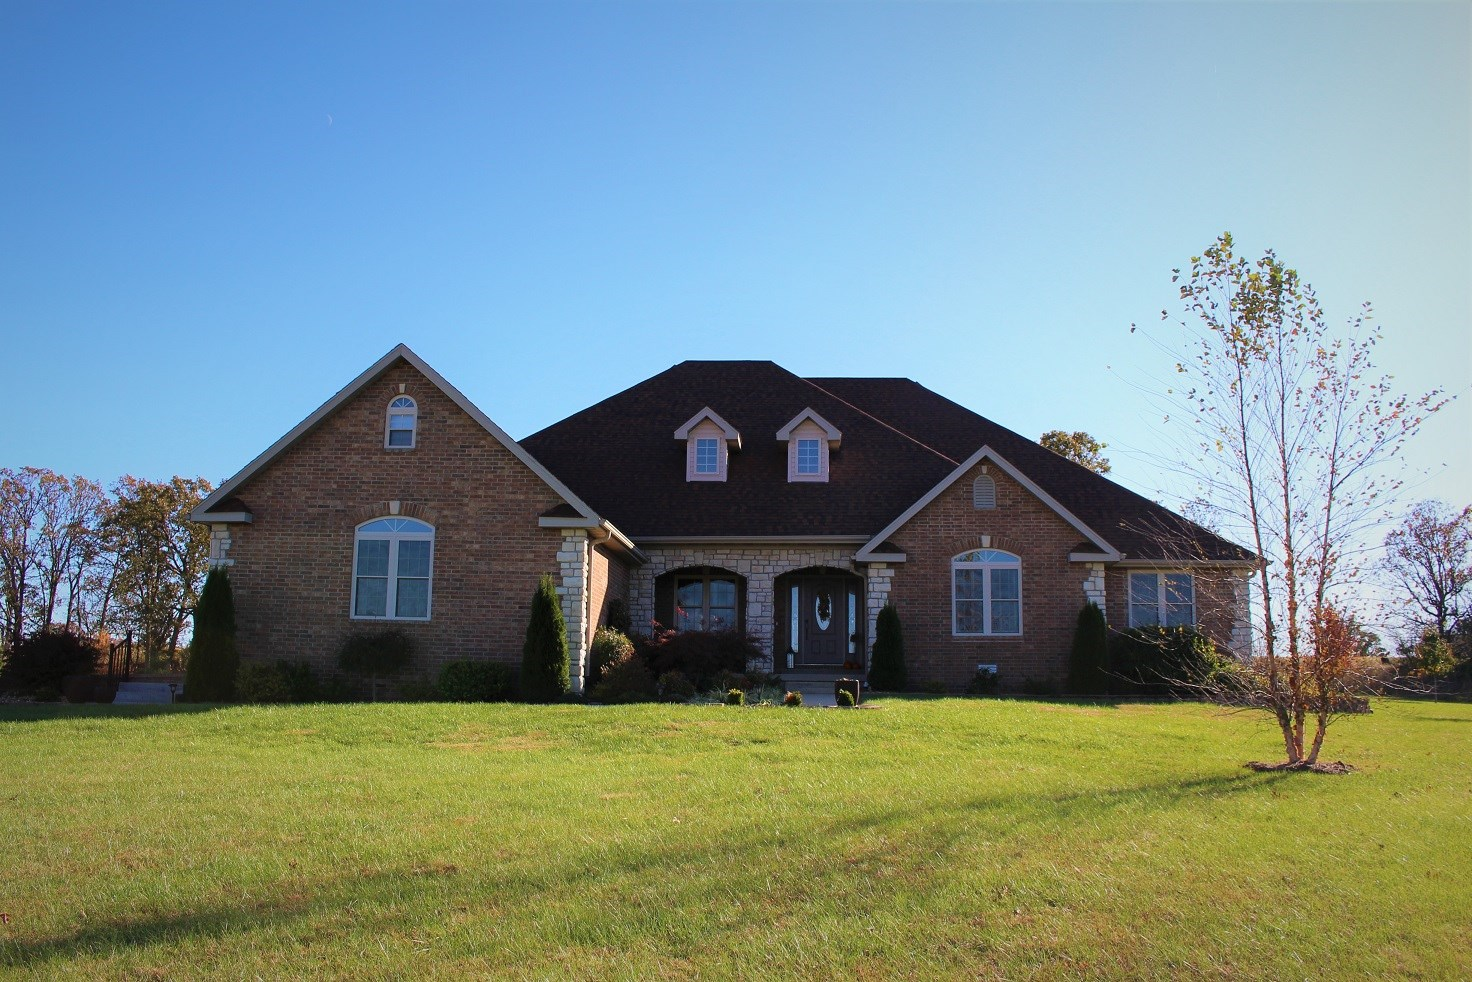 Southern Missouri Brick Home on Acreage